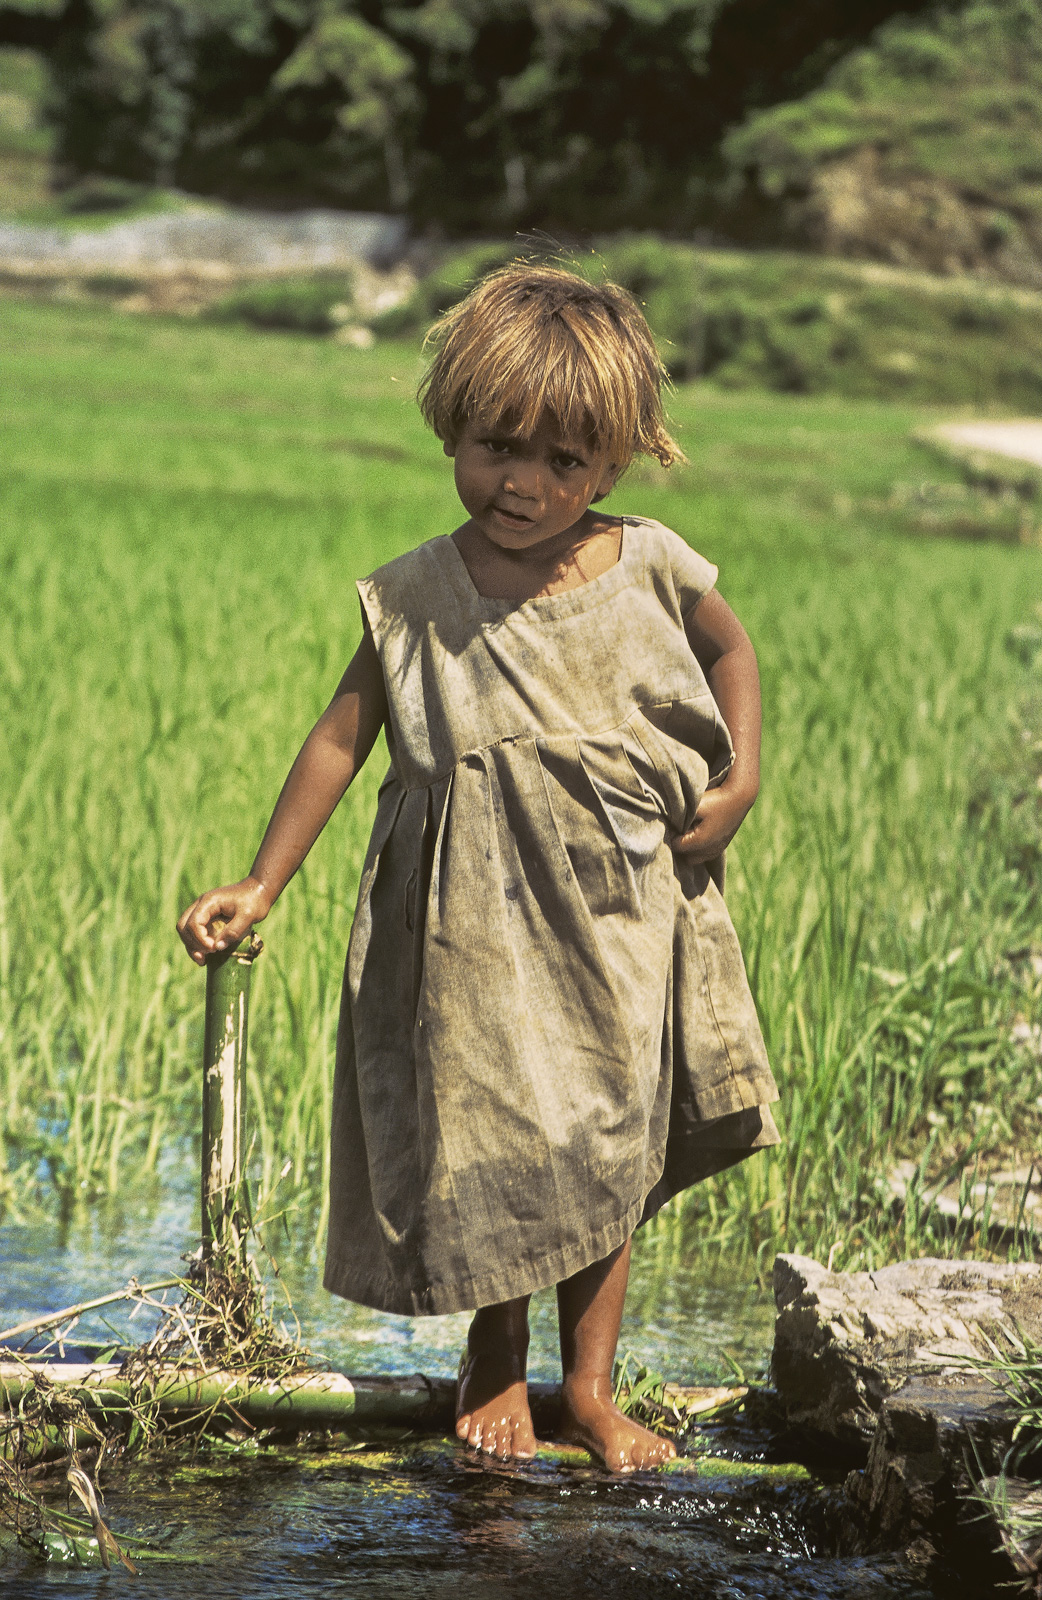 a liitle Nepalese girl of exquisite charm and beauty with perfect olive tanned skin dressed in rags and playing next to the irrigation...